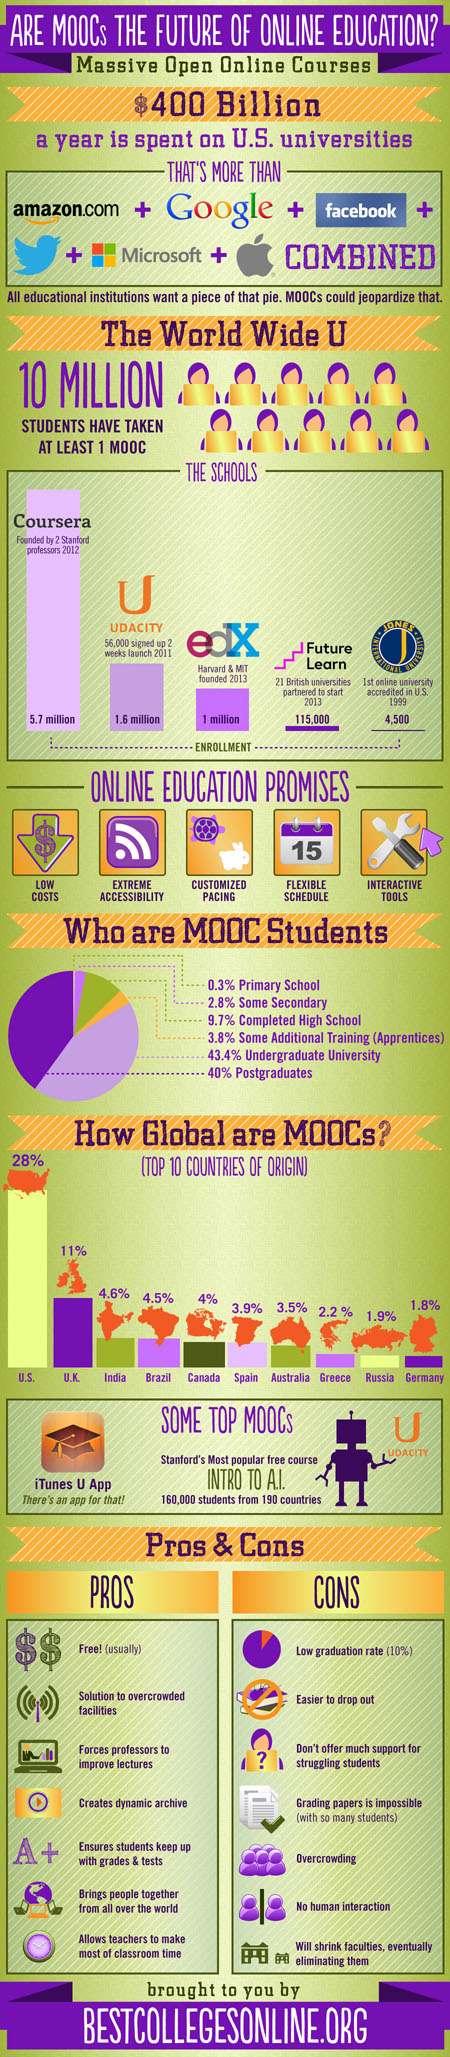 Are MOOCs the future of online education?